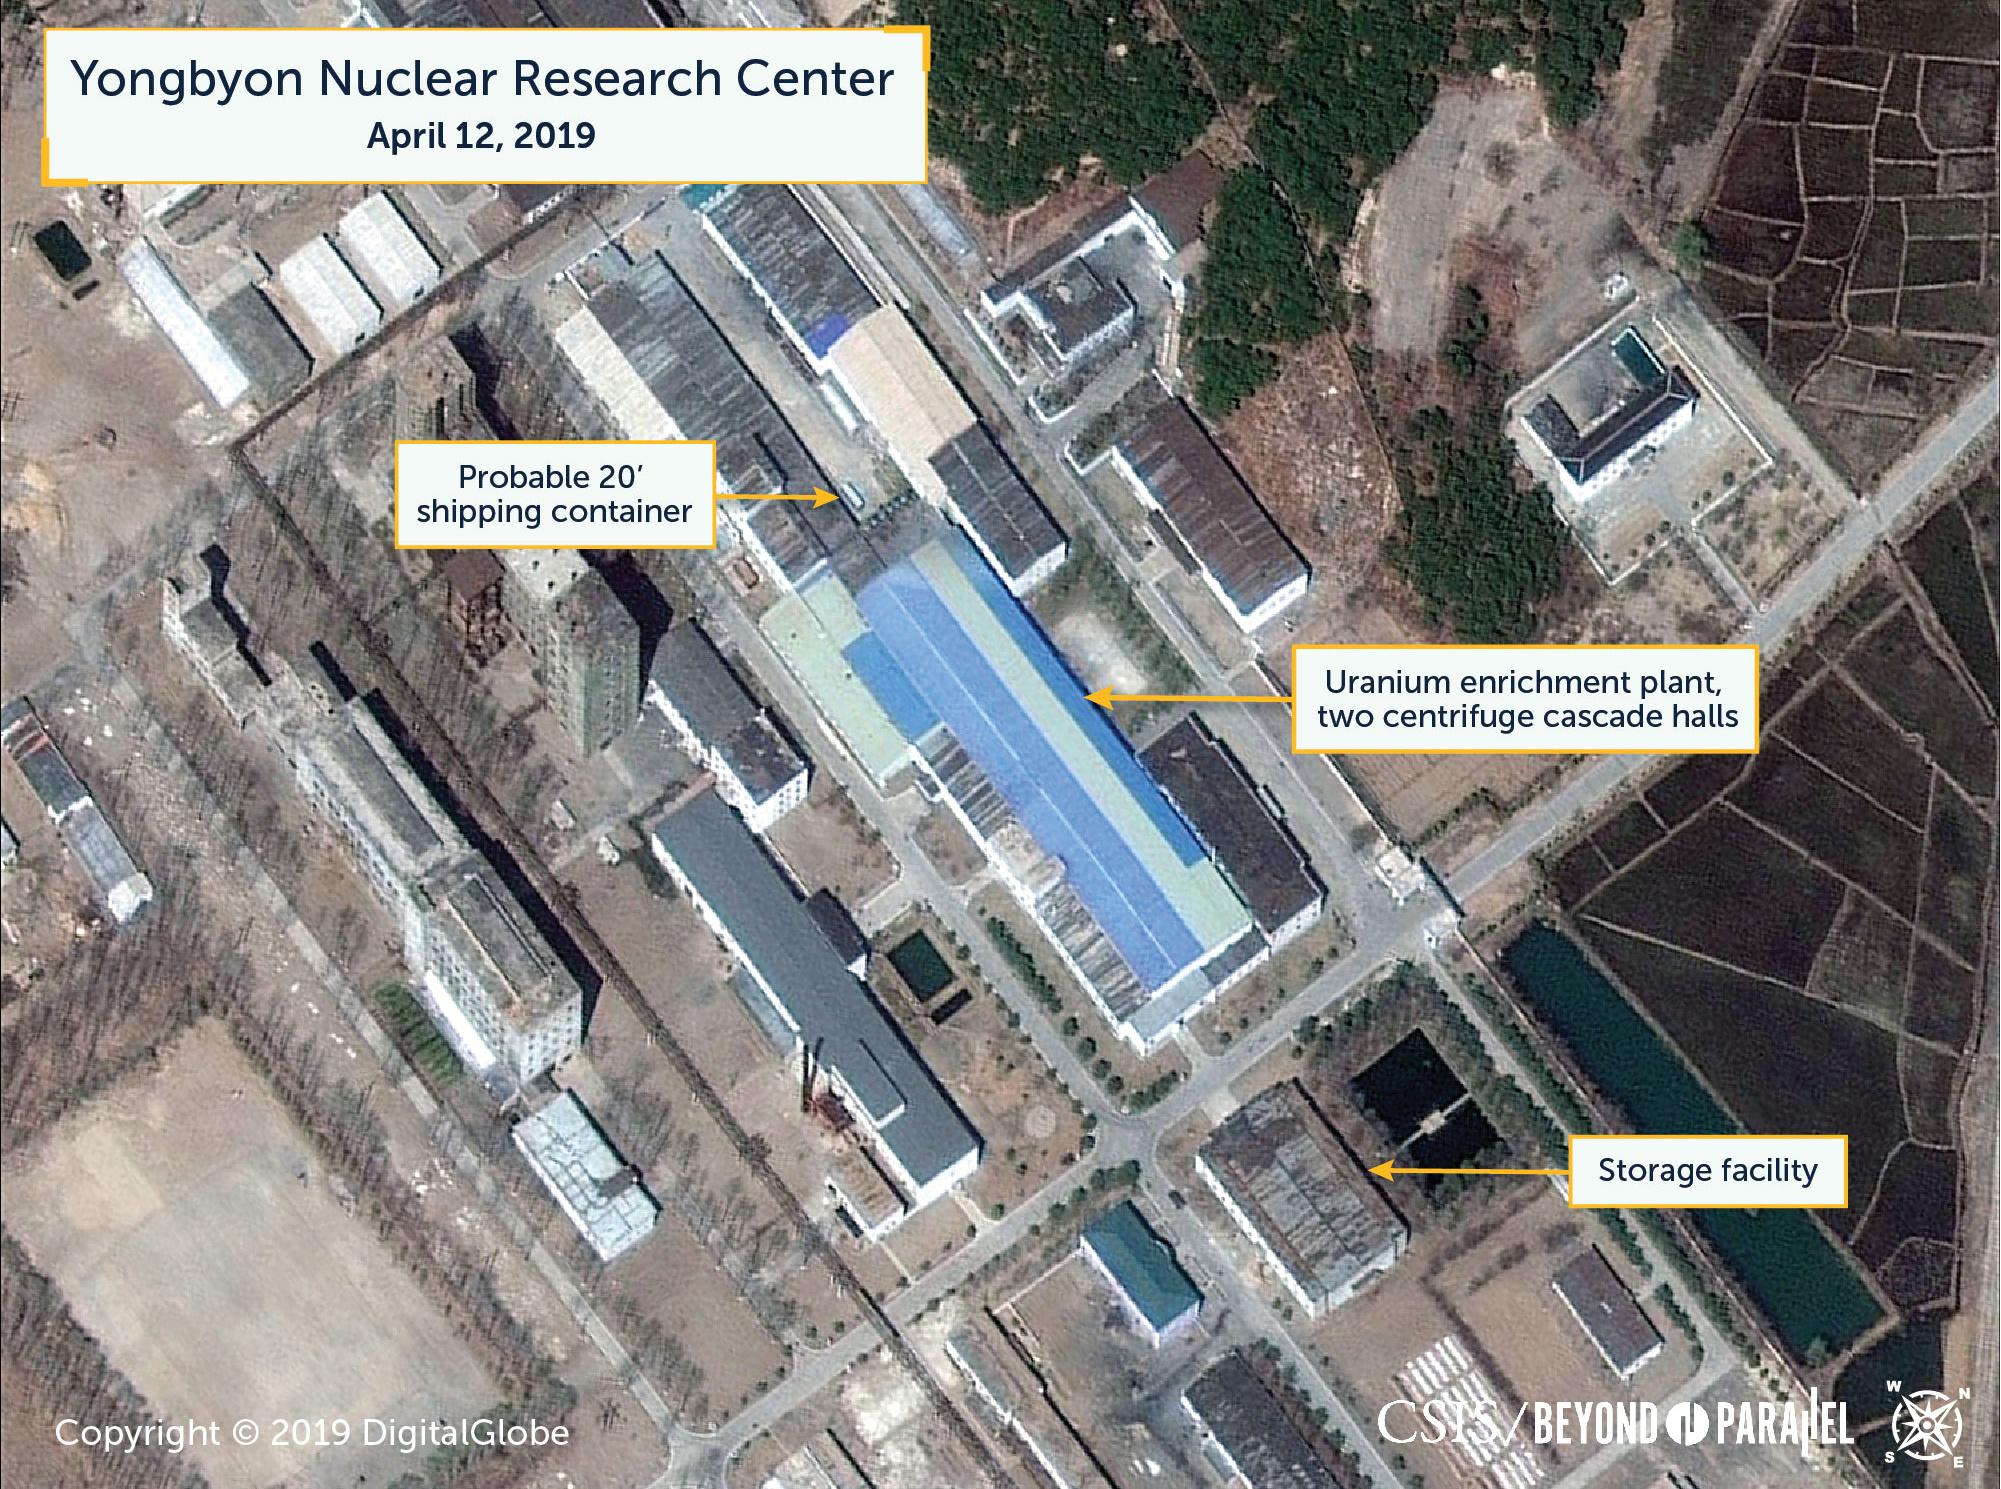 Satellite images may show reprocessing activity at North ... on switzerland satellite map, north korea energy map, north korea map outline, nicaragua satellite map, germany satellite map, north korea genocide map, north korean satellite, pyongyang north korea map, north korea relief map, north africa satellite map, morocco satellite map, monaco satellite map, north korea water map, chile satellite map, north korea detailed map, angola satellite map, north korea satellite launch control, vanuatu satellite map, sri lanka satellite map, north korea wind map,